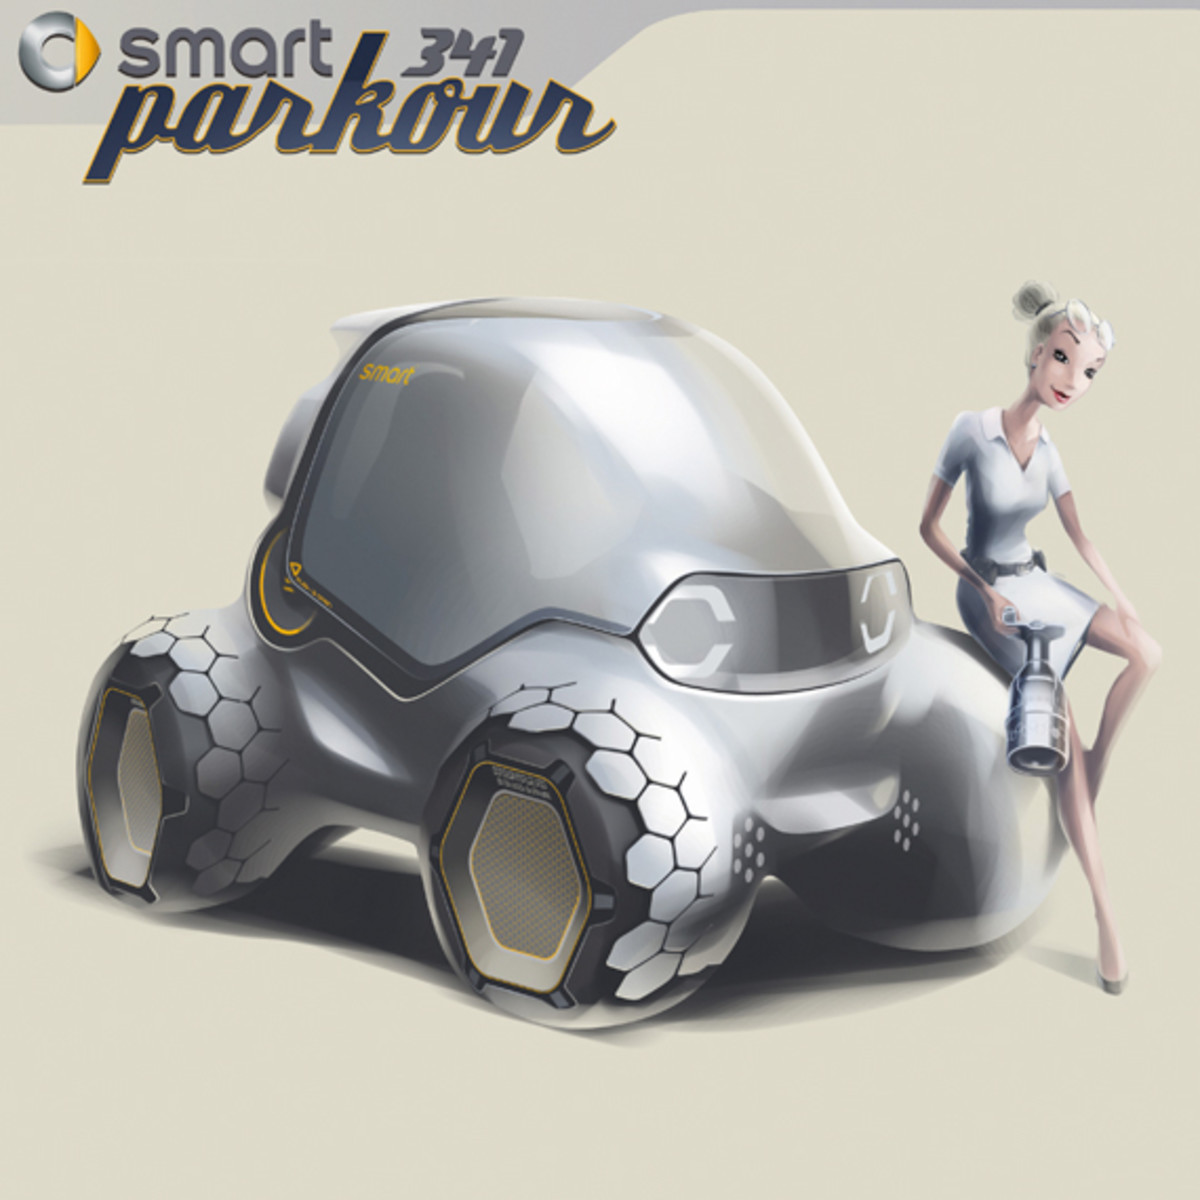 mercedes-benz-advanced-design-2011-la-design-challenge-smart-341-parkour-01